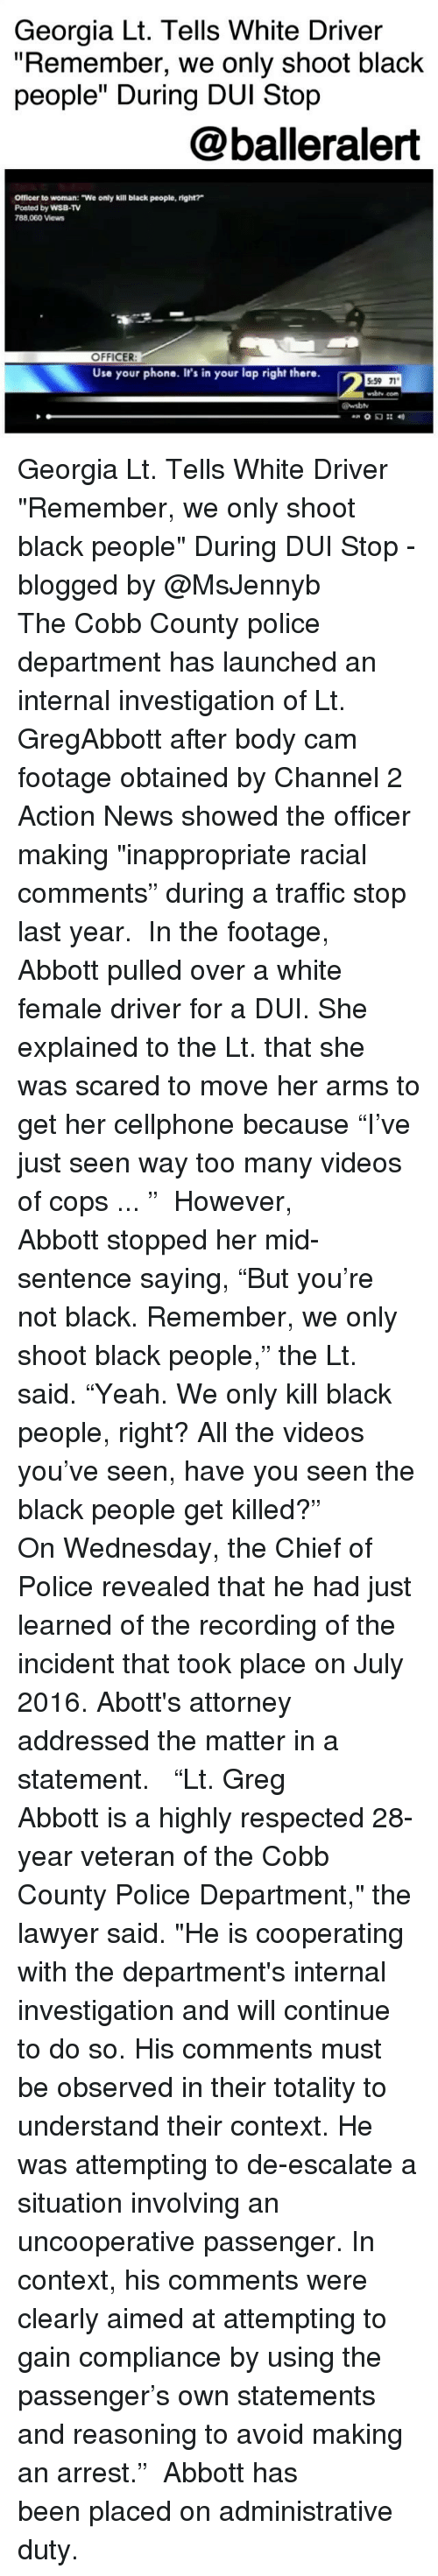 "attorneys: Georgia Lt. Tells White Driver  ""Remember, we only shoot black  people"" During DUI Stop  @balleralert  Officer to woman: ""We only kill black people, right?  Posted by WSB-TV  788,060 Views  OFFICER  Use your phone. It's in your lap right there.  2  5:59 71  wably cor  @waby Georgia Lt. Tells White Driver ""Remember, we only shoot black people"" During DUI Stop - blogged by @MsJennyb ⠀⠀⠀⠀⠀⠀⠀ The Cobb County police department has launched an internal investigation of Lt. GregAbbott after body cam footage obtained by Channel 2 Action News showed the officer making ""inappropriate racial comments"" during a traffic stop last year. ⠀⠀⠀⠀⠀⠀⠀ In the footage, Abbott pulled over a white female driver for a DUI. She explained to the Lt. that she was scared to move her arms to get her cellphone because ""I've just seen way too many videos of cops ... "" ⠀⠀⠀⠀⠀⠀⠀ However, Abbott stopped her mid-sentence saying, ""But you're not black. Remember, we only shoot black people,"" the Lt. said. ""Yeah. We only kill black people, right? All the videos you've seen, have you seen the black people get killed?"" ⠀⠀⠀⠀⠀⠀⠀ On Wednesday, the Chief of Police revealed that he had just learned of the recording of the incident that took place on July 2016. Abott's attorney addressed the matter in a statement. ⠀⠀⠀⠀⠀⠀⠀ ⠀⠀⠀⠀⠀⠀⠀ ""Lt. Greg Abbott is a highly respected 28-year veteran of the Cobb County Police Department,"" the lawyer said. ""He is cooperating with the department's internal investigation and will continue to do so. His comments must be observed in their totality to understand their context. He was attempting to de-escalate a situation involving an uncooperative passenger. In context, his comments were clearly aimed at attempting to gain compliance by using the passenger's own statements and reasoning to avoid making an arrest."" ⠀⠀⠀⠀⠀⠀⠀ Abbott has been placed on administrative duty."